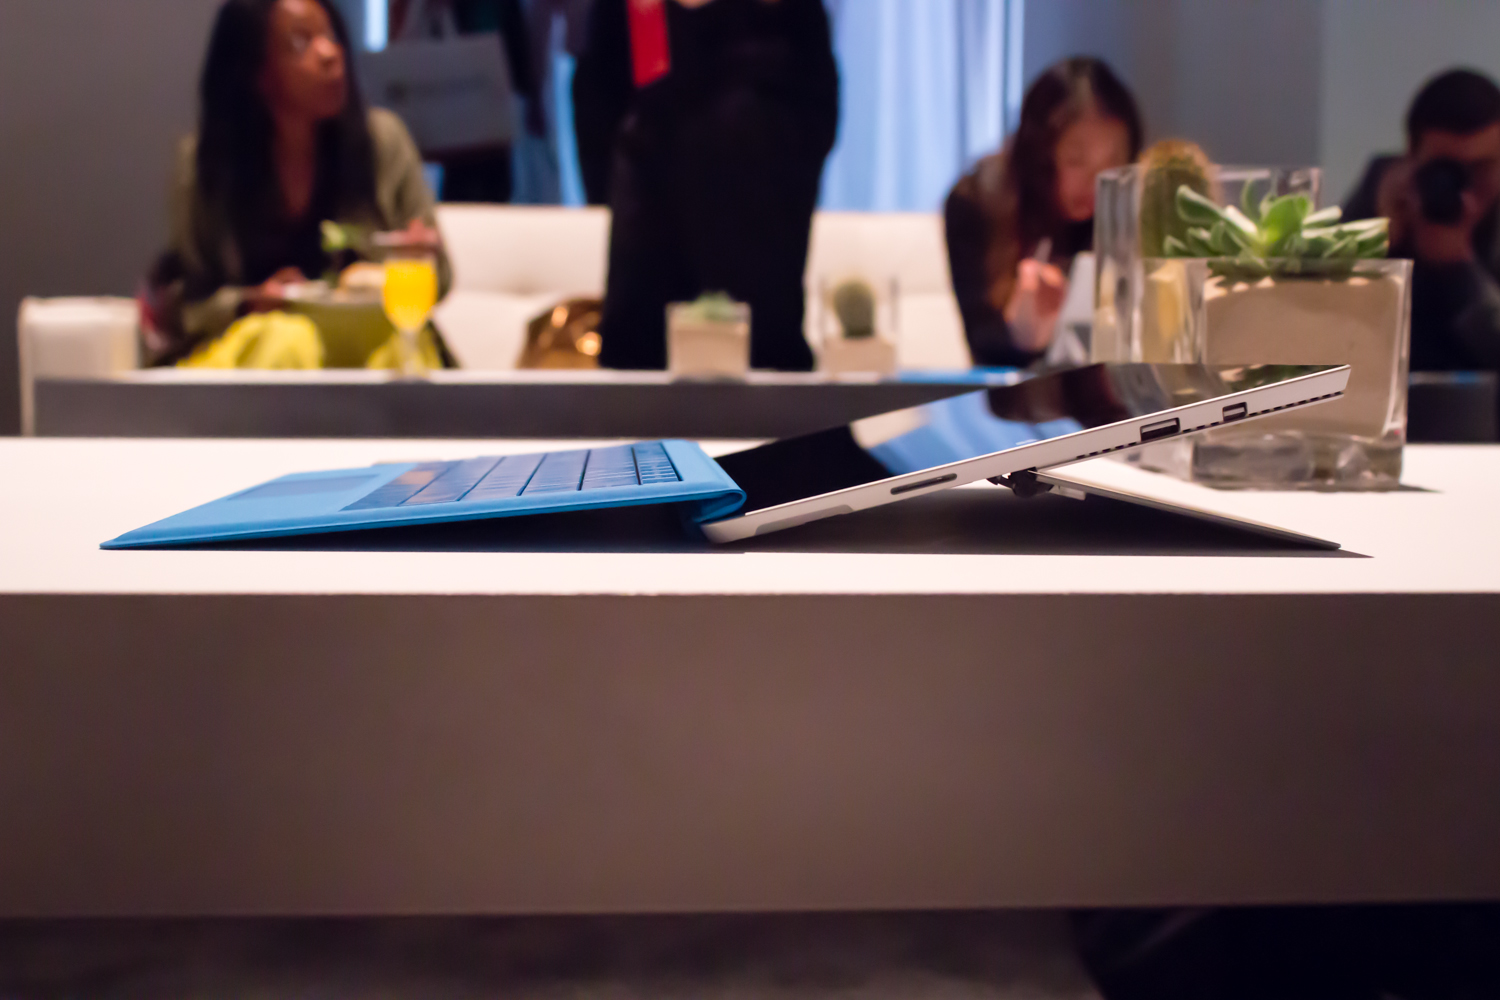 When opened to its full extent, the Surface Pro 3 is held at a convenient angle for writing on-screen.